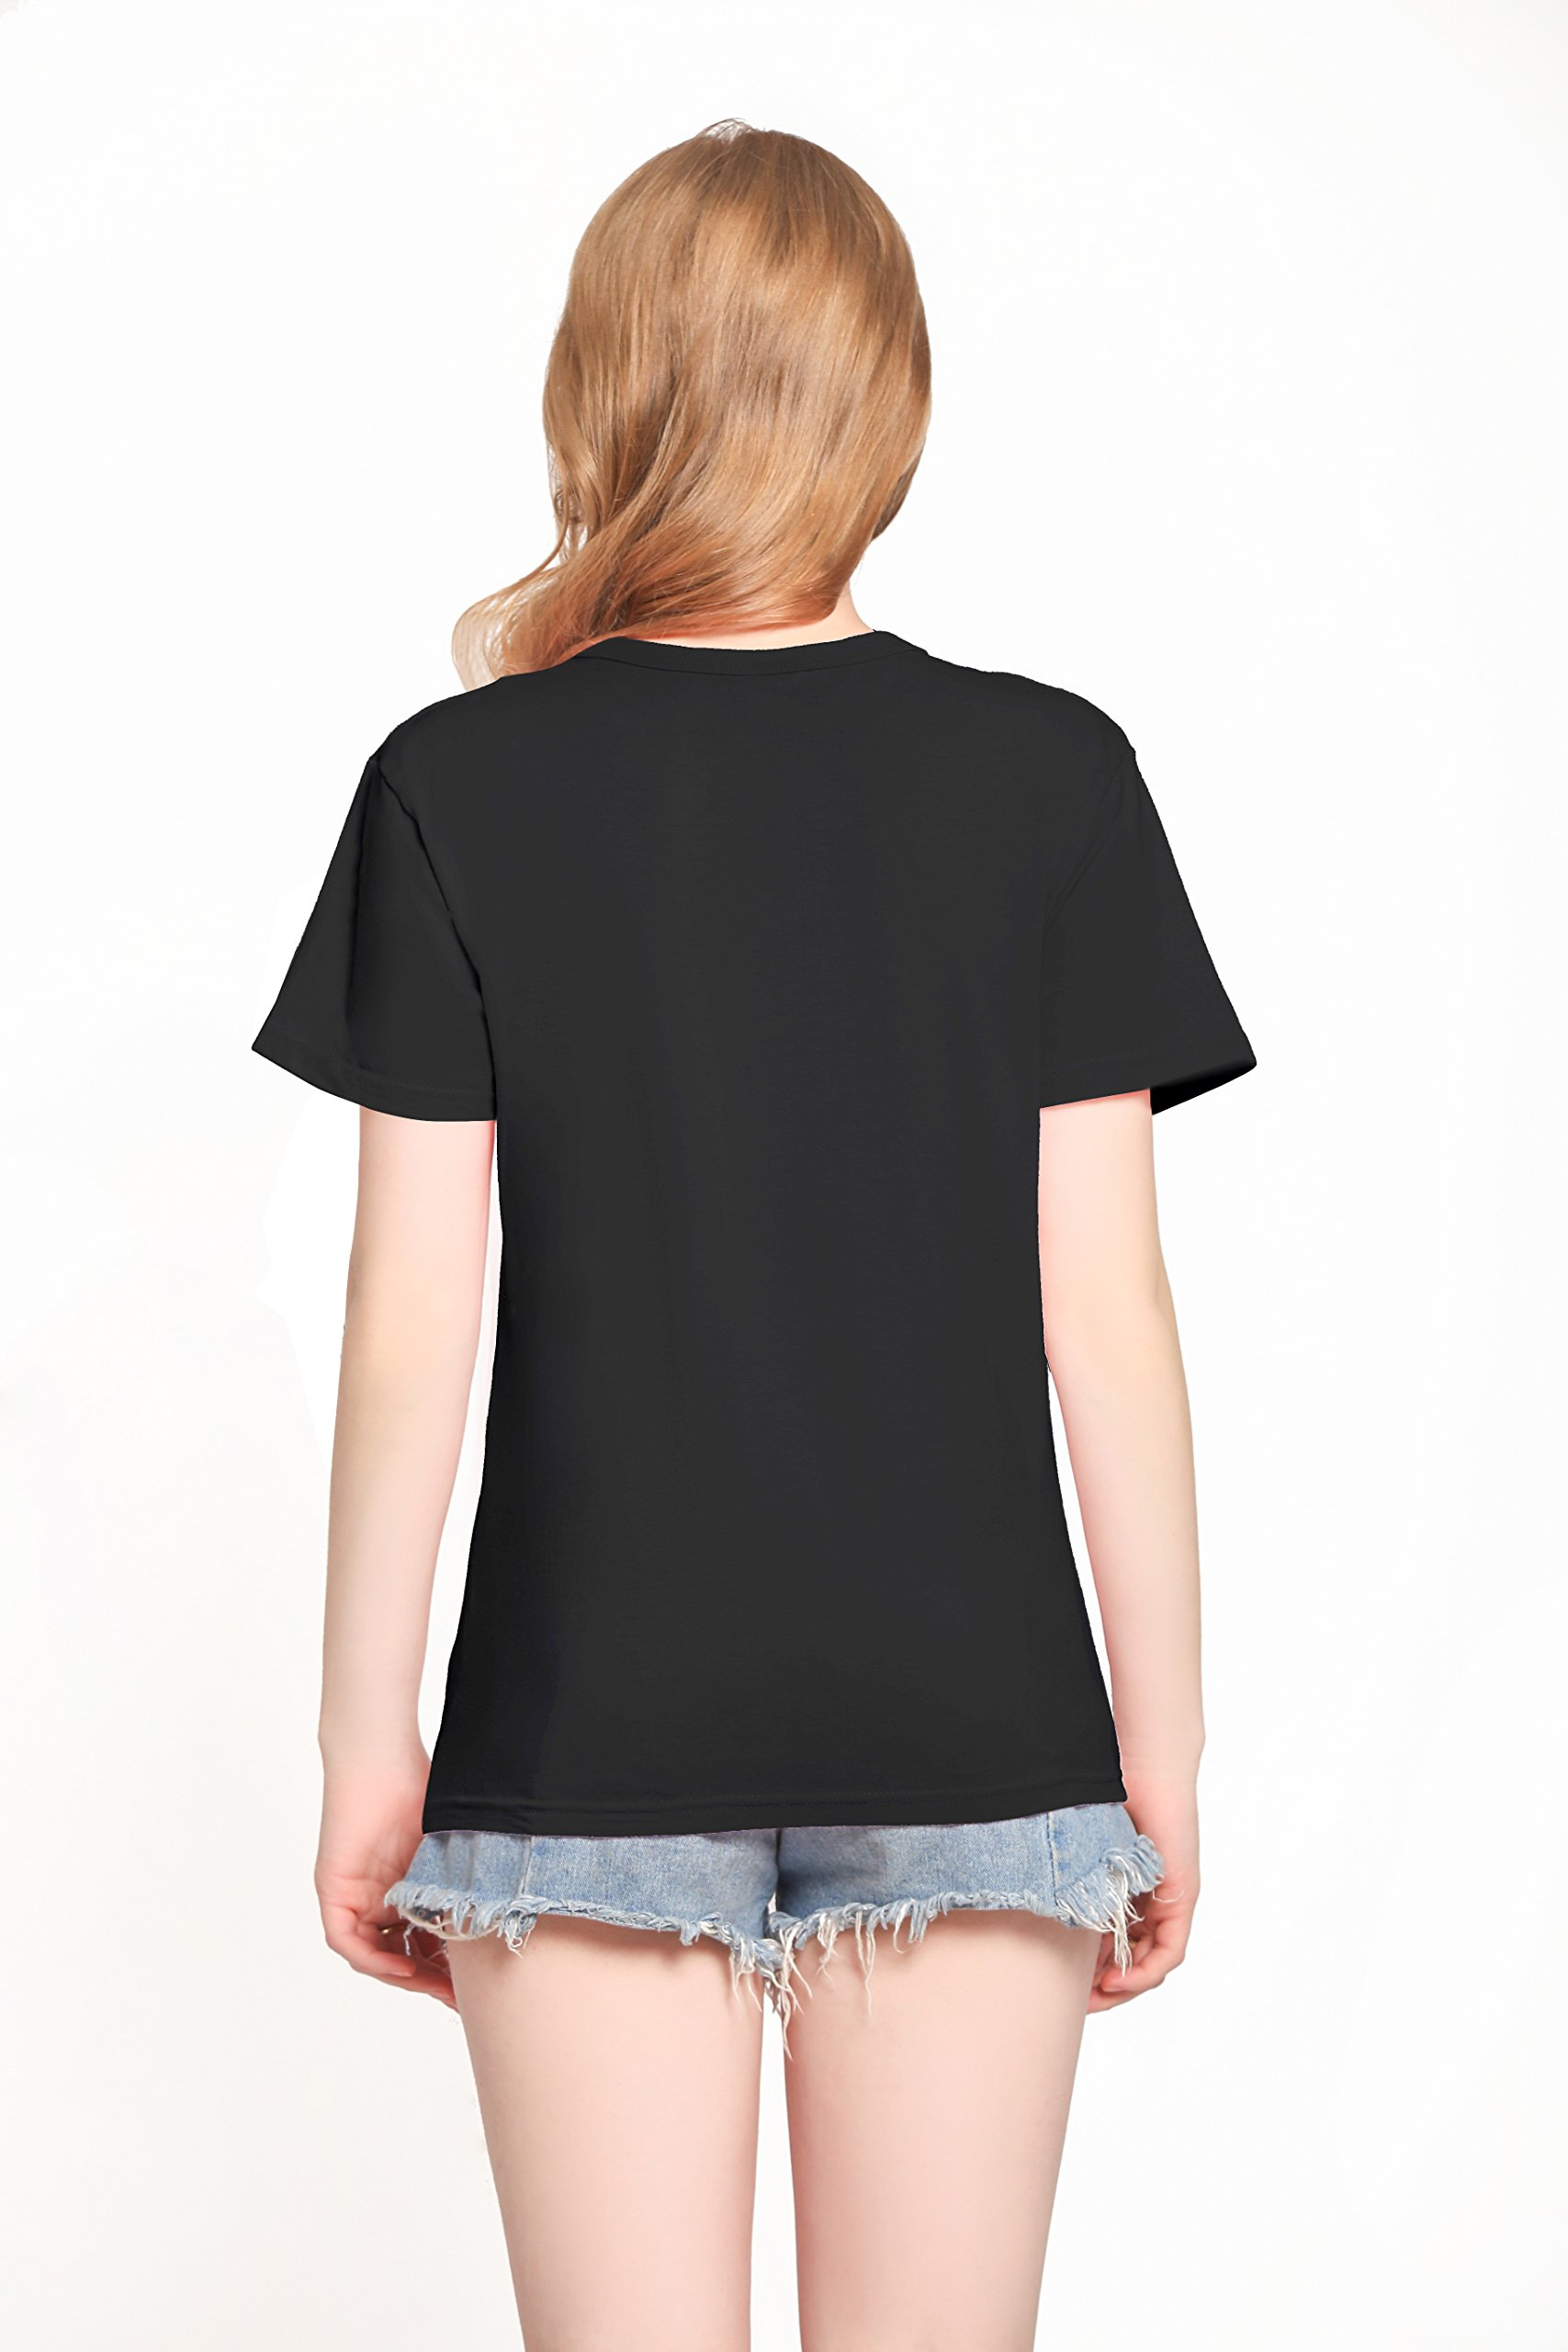 PINJIA Womens Cotton Letter Printed Pullover Tshirts Top Tees(MX15)(L,Black Bitches)